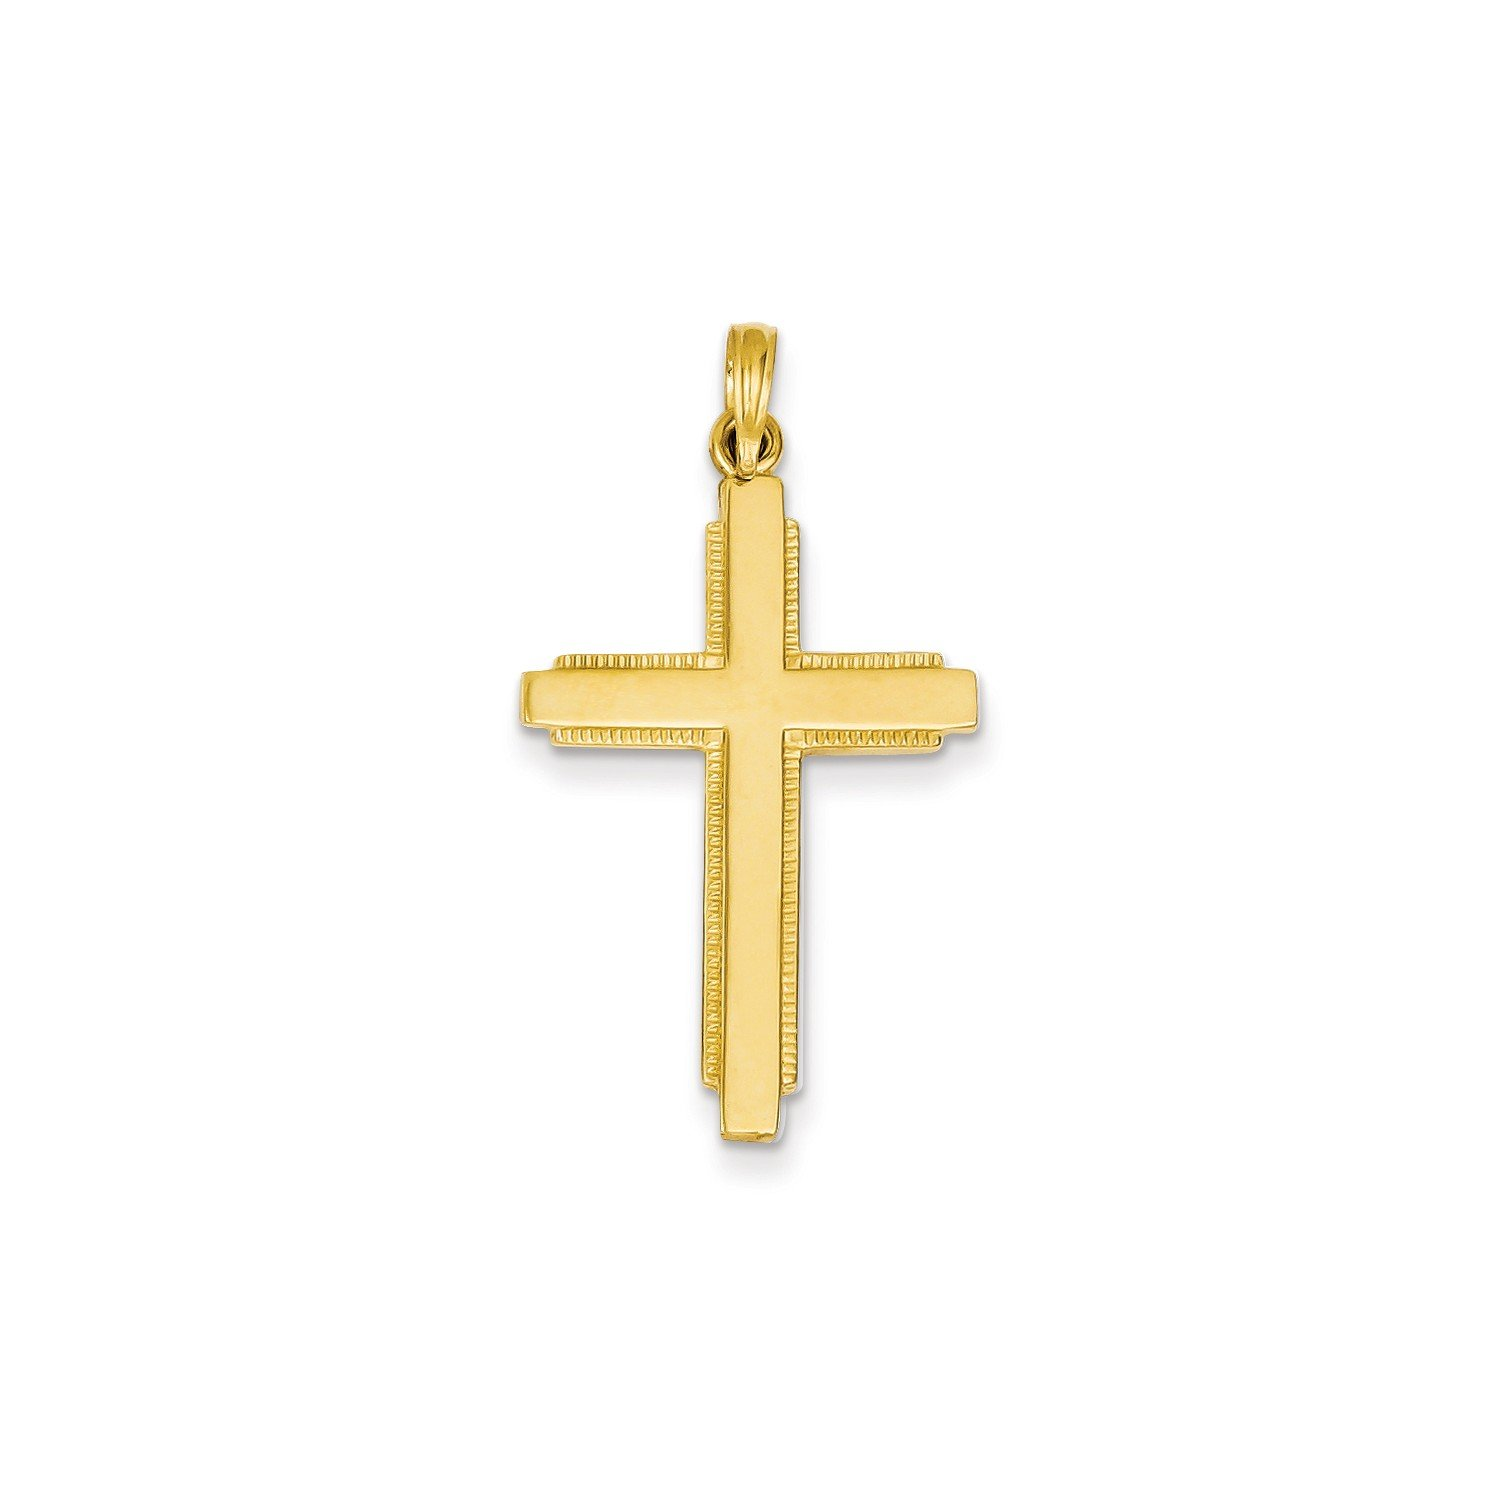 Roy Rose Jewelry 14K Yellow Gold Solid Cross Pendant 38mm length